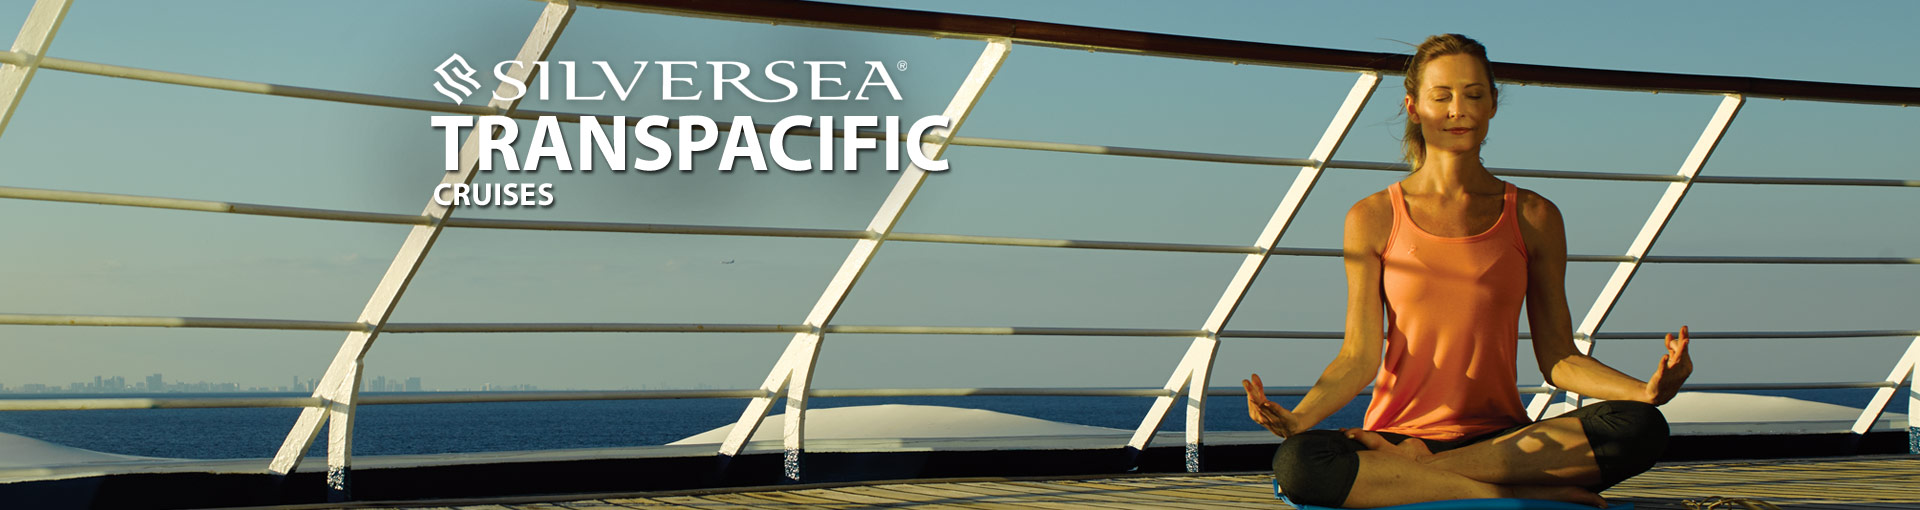 Banner for Silversea Transpacific cruises